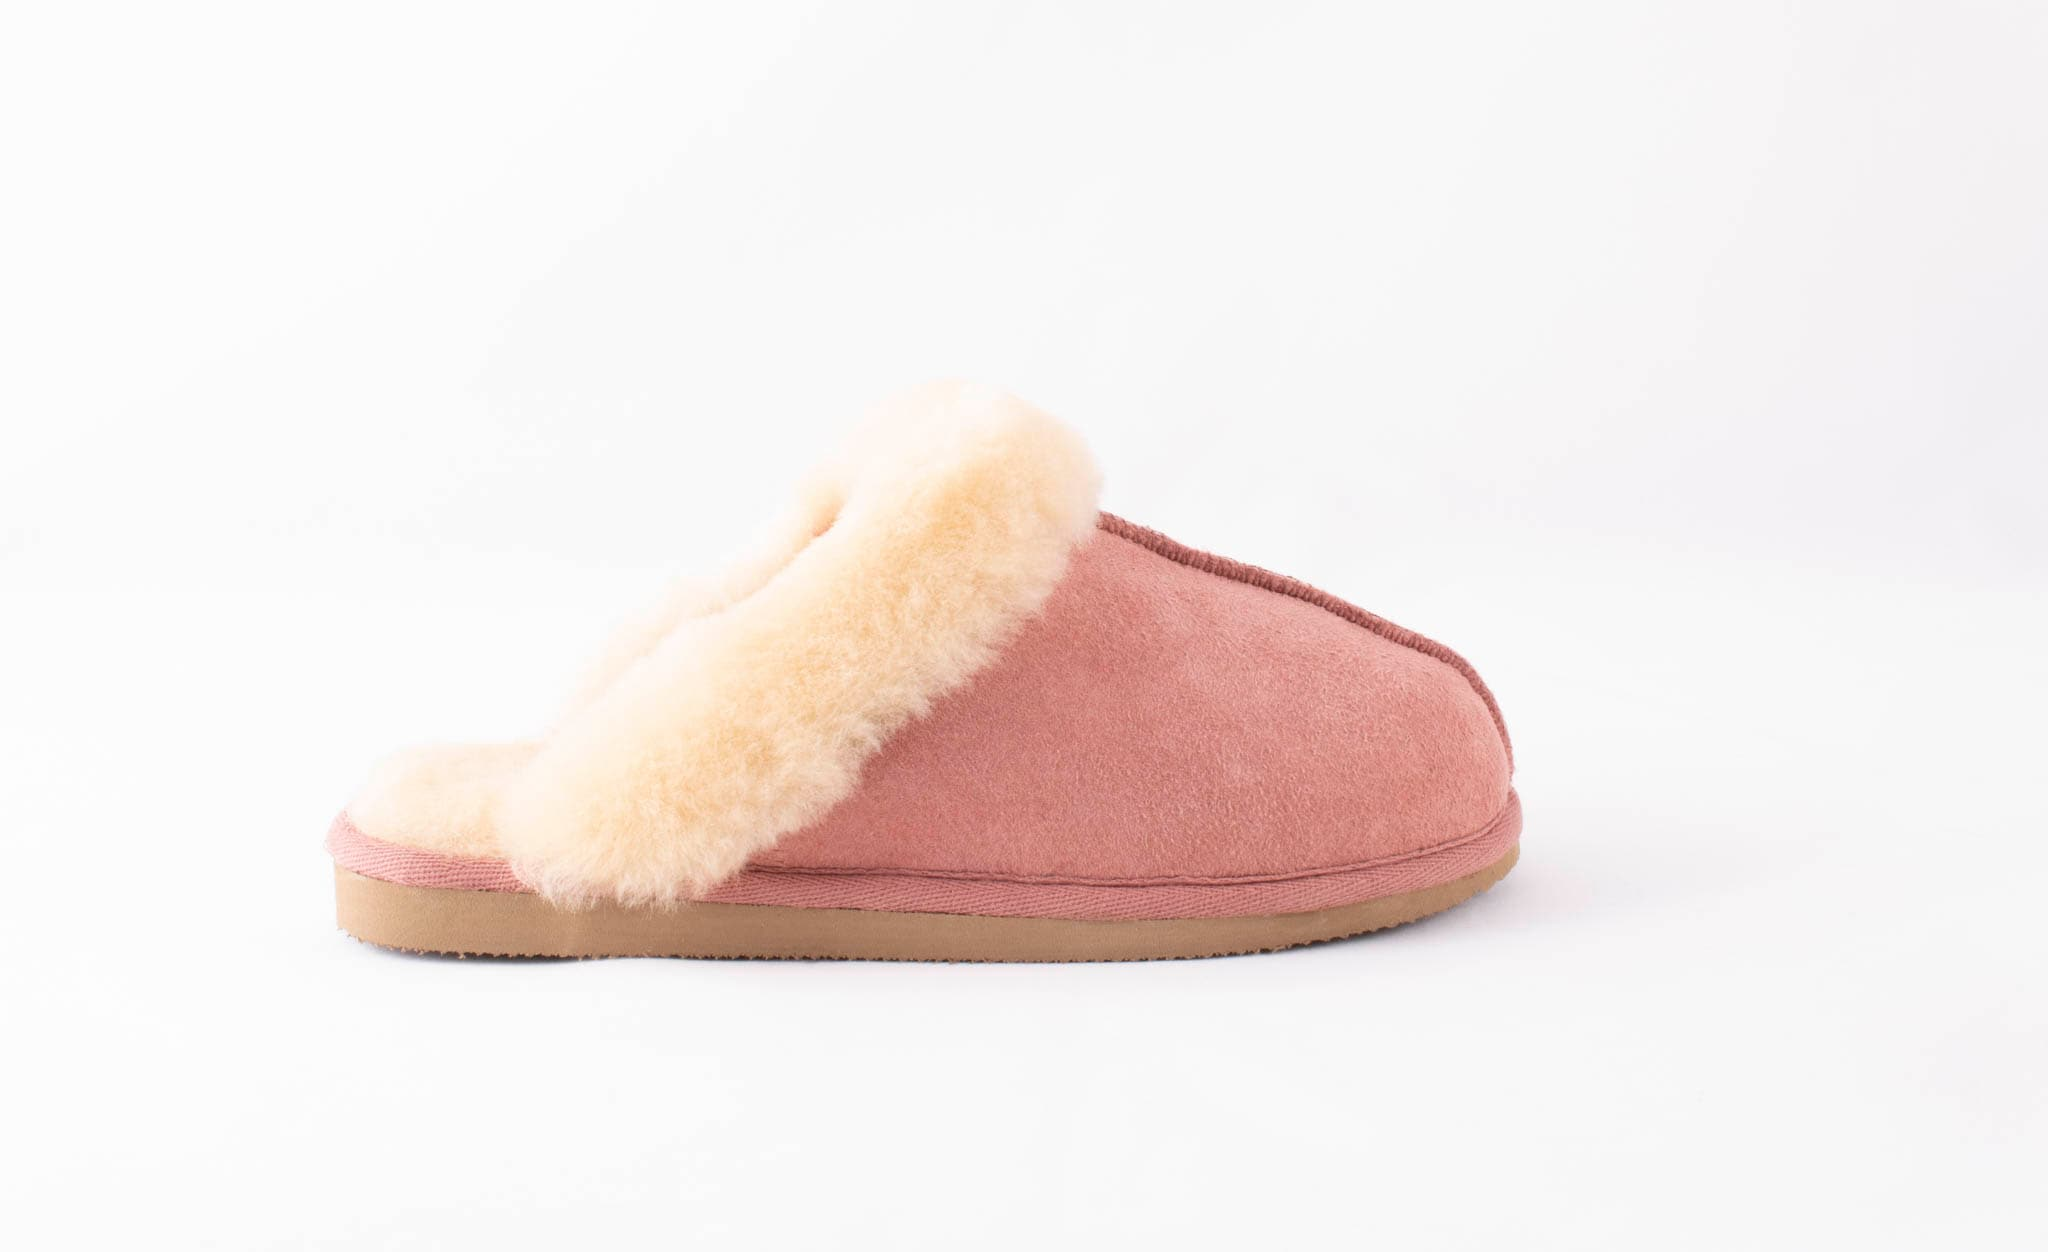 Shepherd Jessica slippers